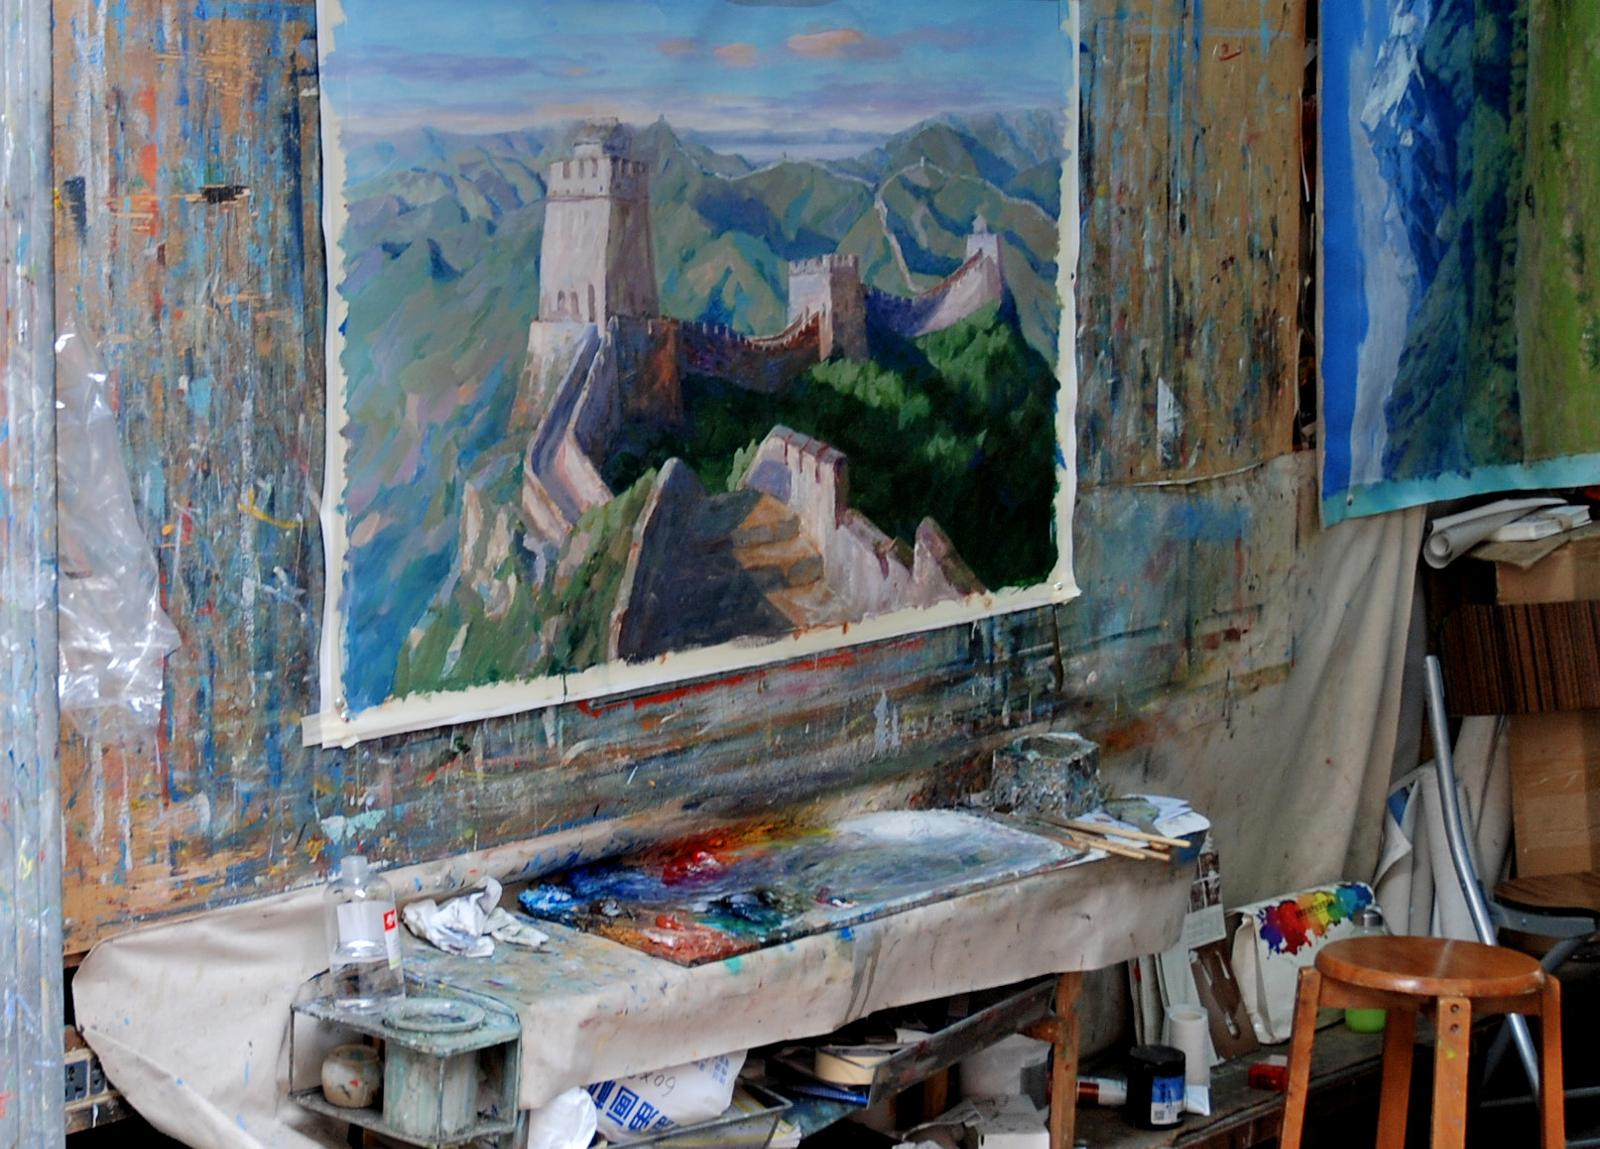 Photo of Dafen Oil Painting Village, Shenzhen, Guangdong Province, PRC